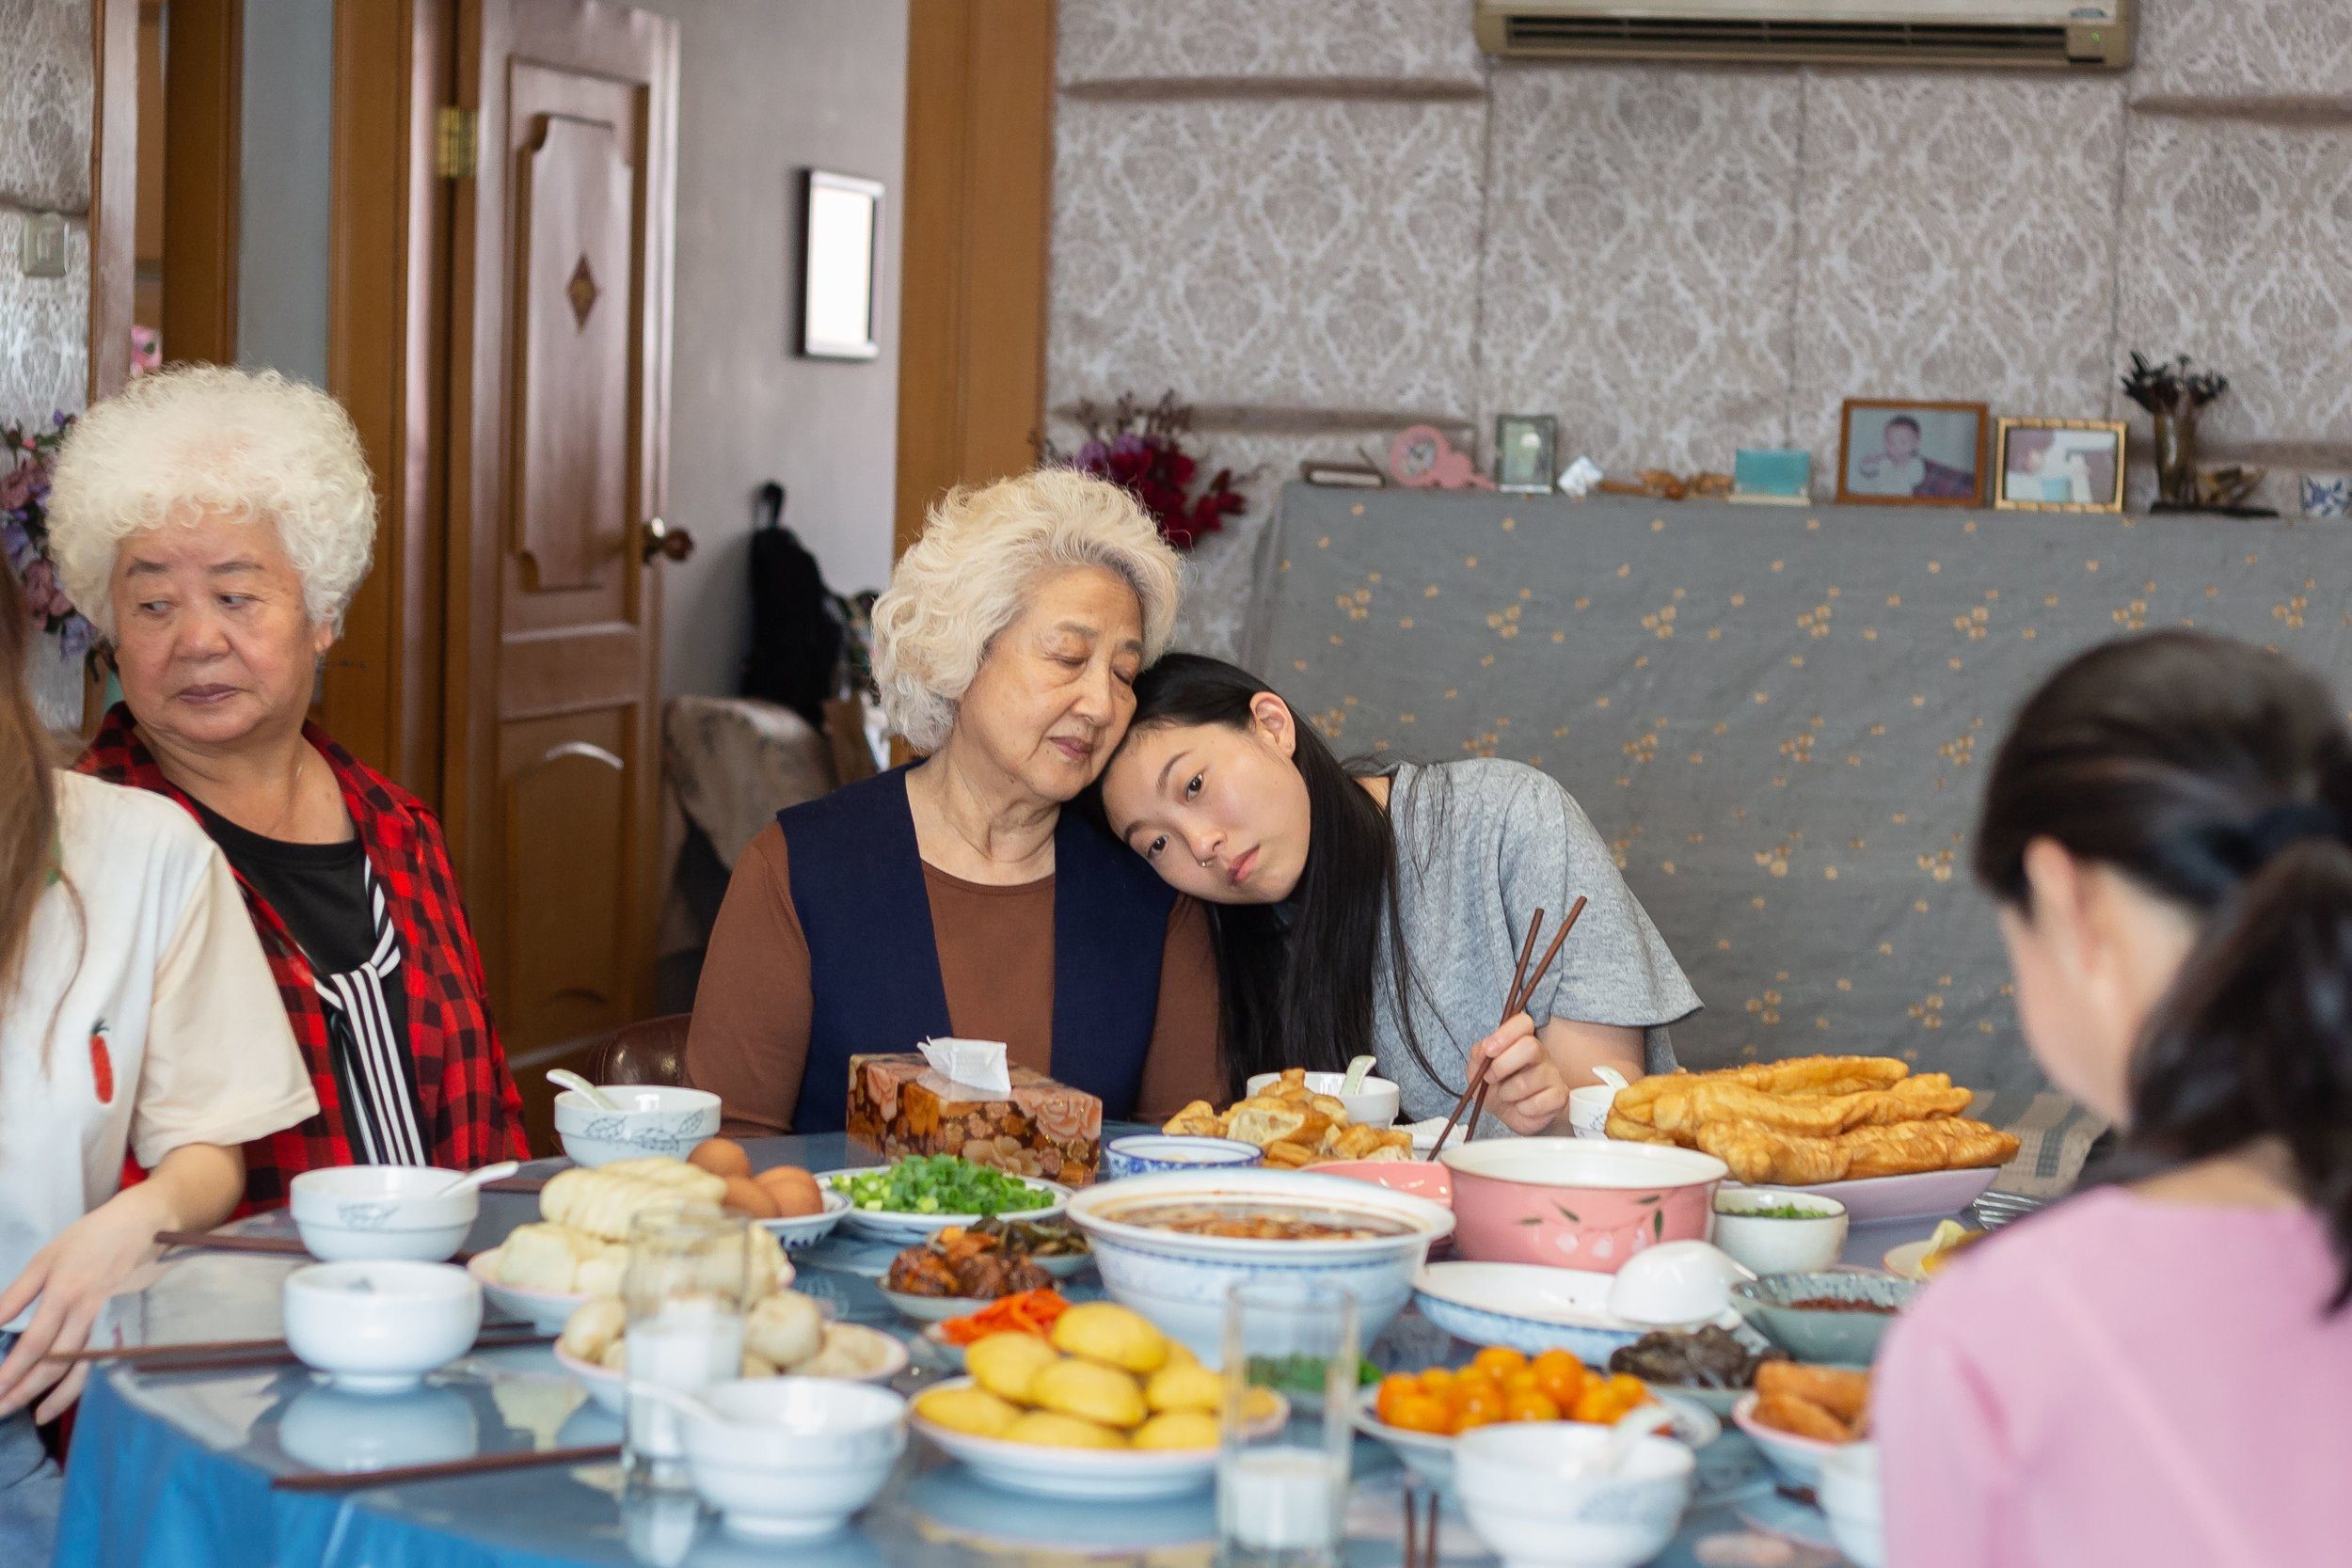 """Billi (Awkwafina, right), a Chinese-American academic, takes comfort from her grandmother, Nai Nai (Shuzhen Zhou), during a family gathering in China, in Lulu Wang's comedy-drama """"The Farewell."""" (Photo courtesy of A24 Films.)"""